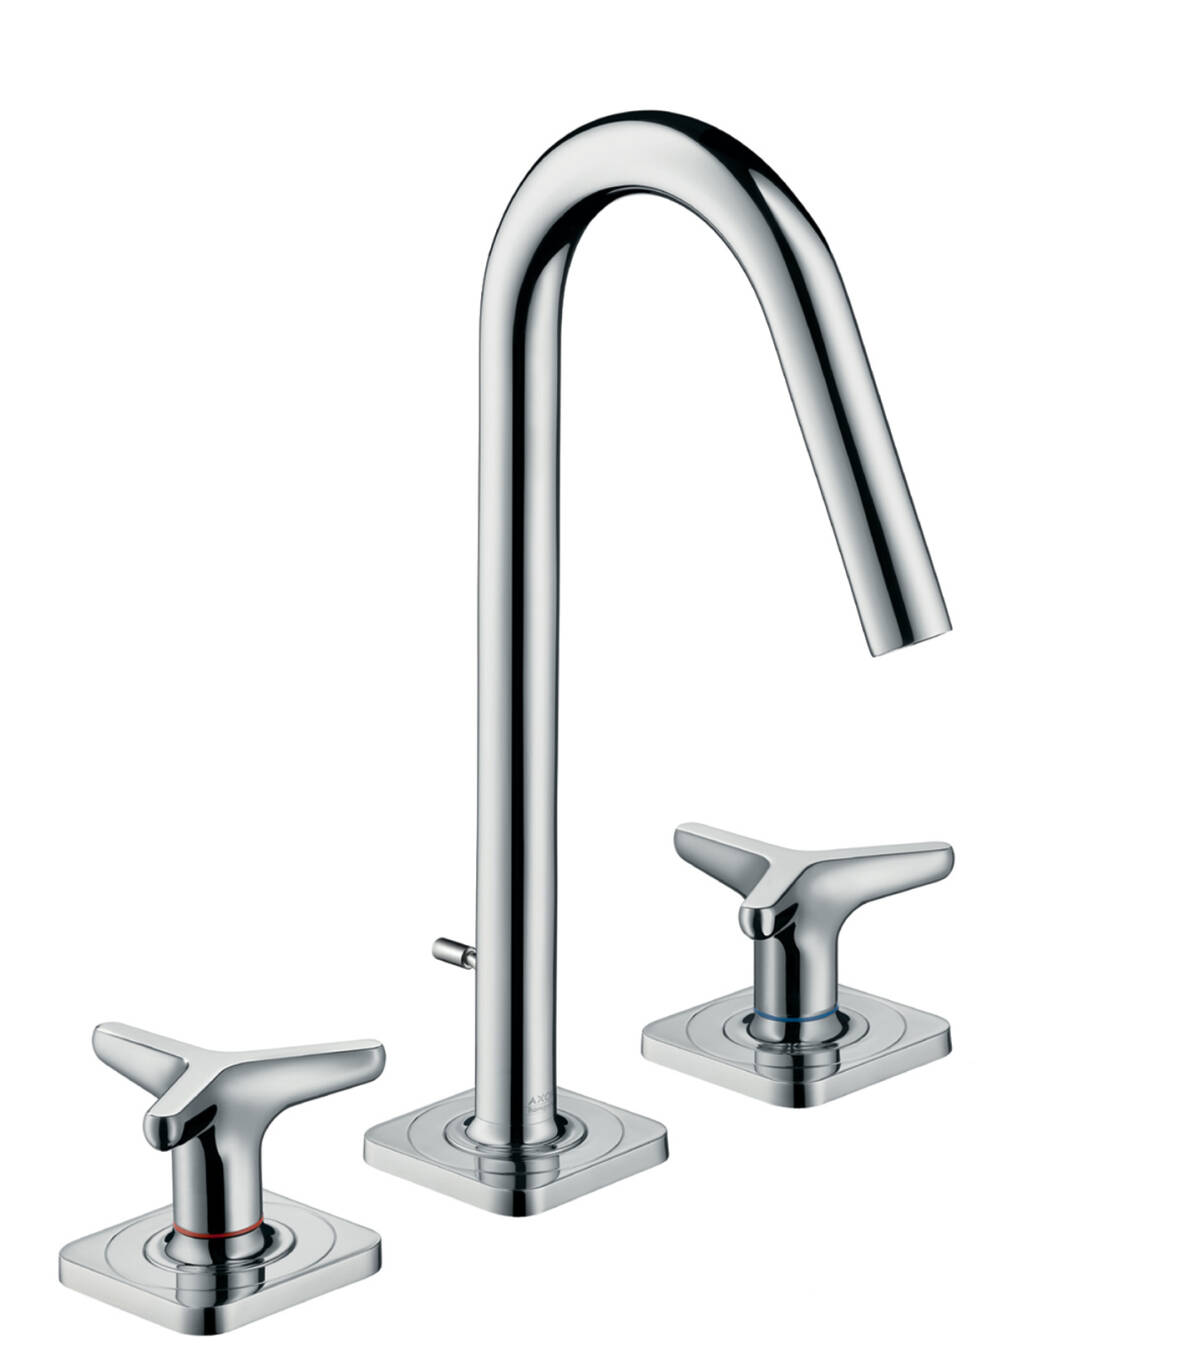 3-hole basin mixer 160 with star handles, escutcheons and pop-up waste set, Chrome, 34135000